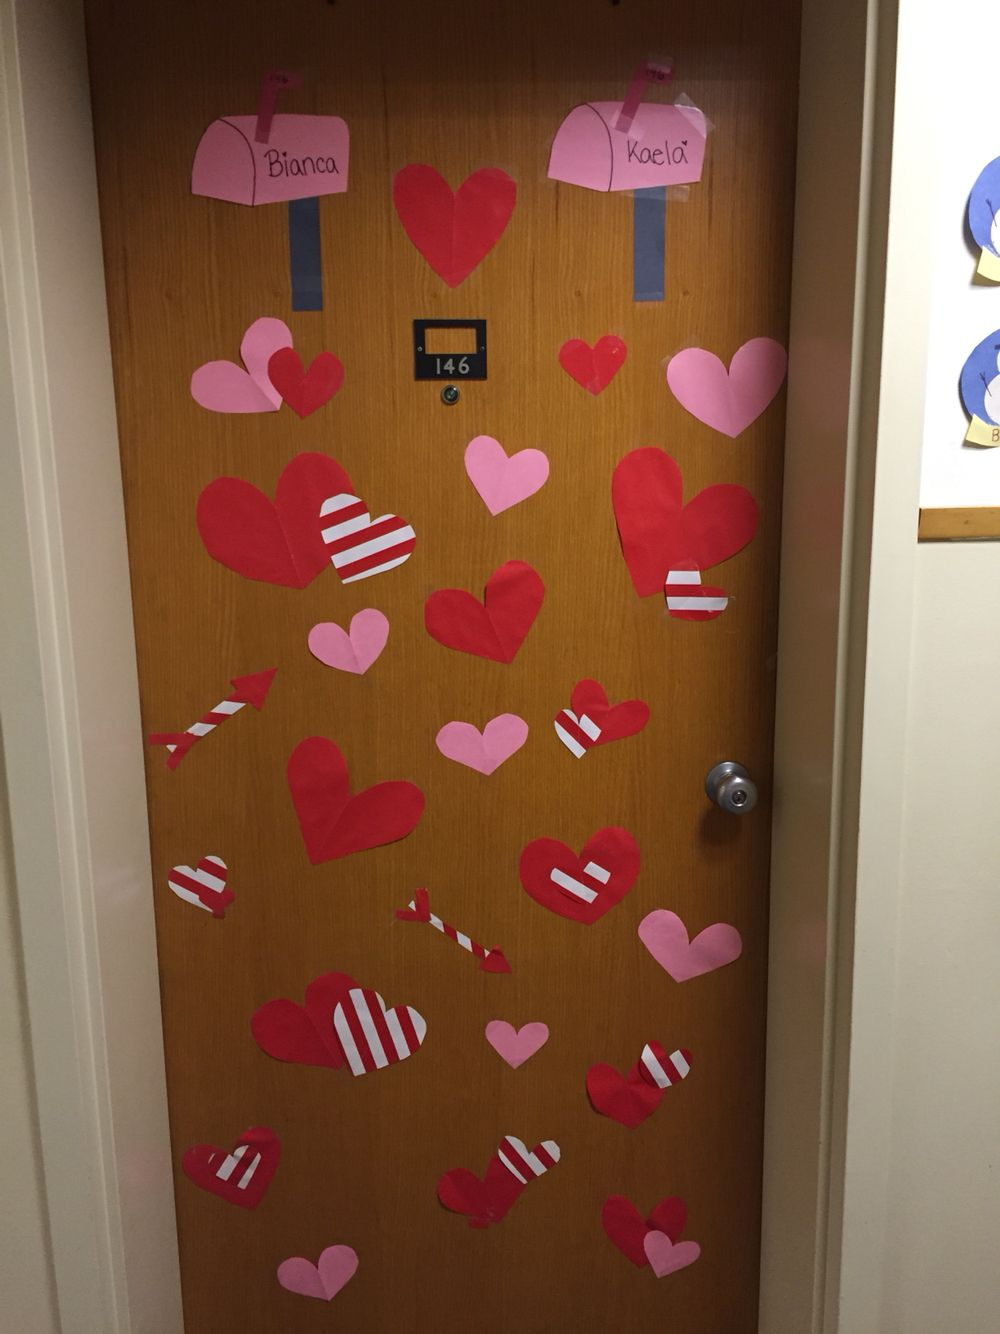 How to decorate a dorm room for valentines day — pic 2